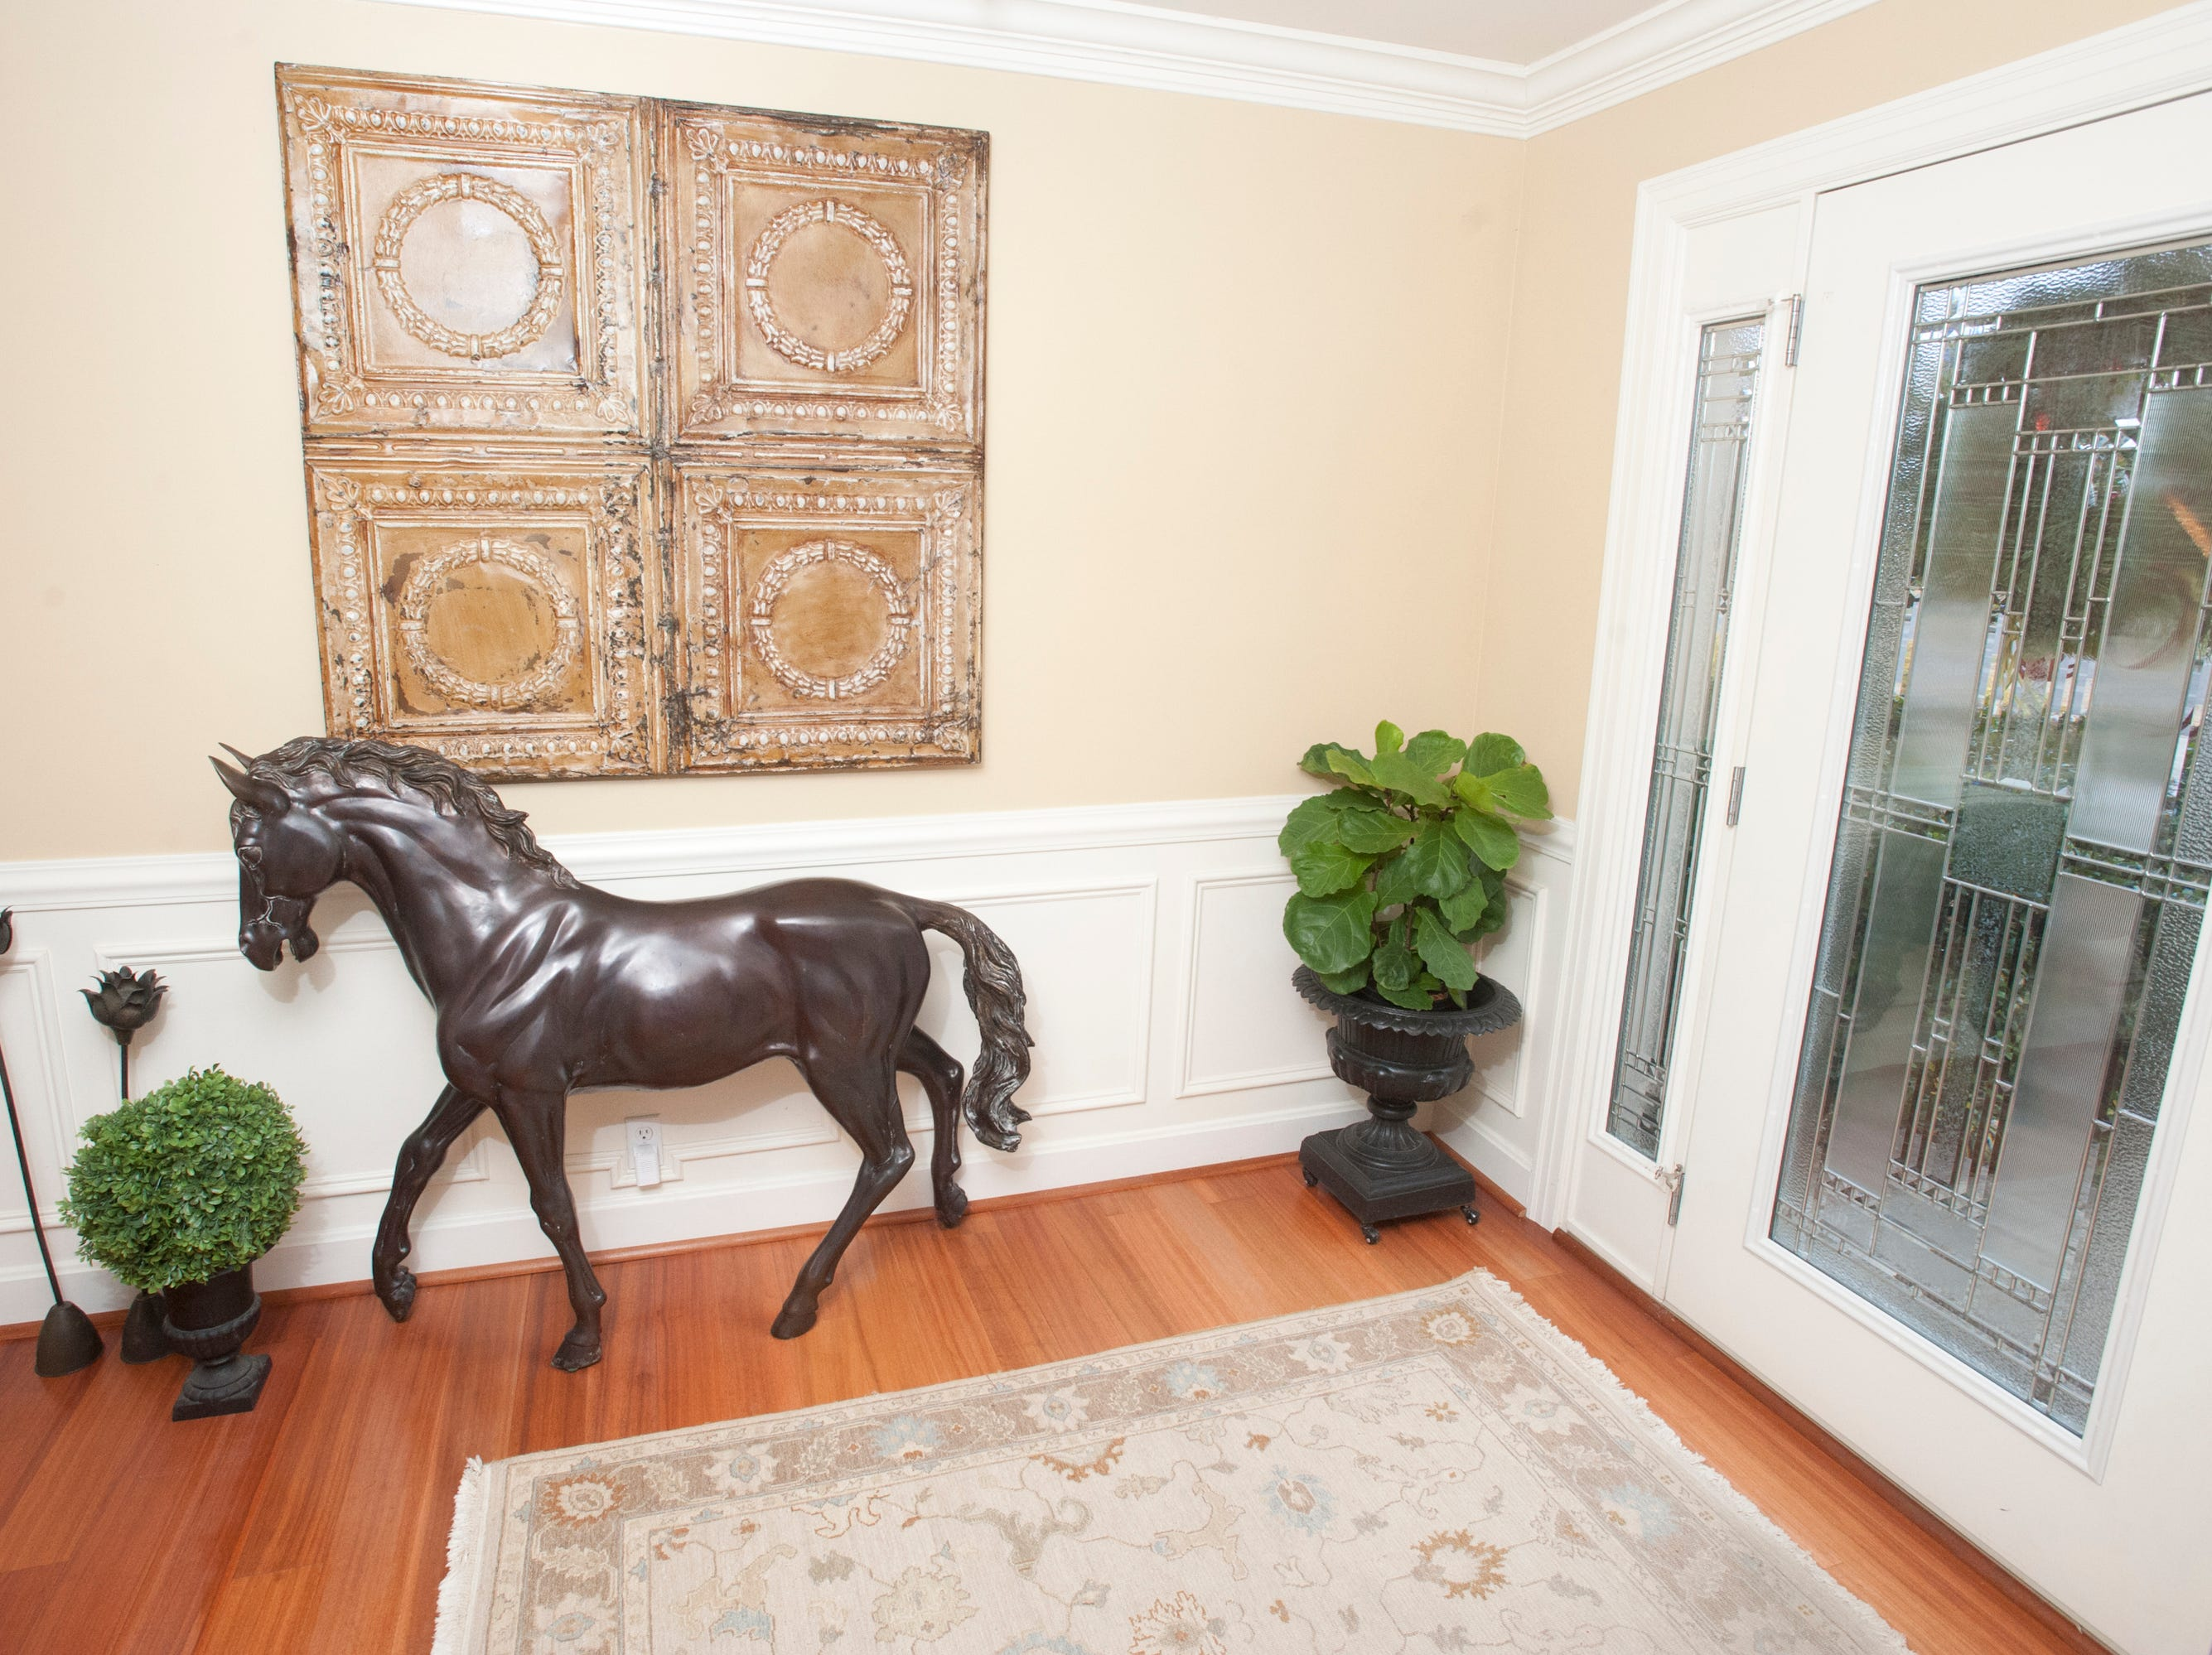 The entrance foyer of the home features a bronze horse by French sculptor P.J. Mene.